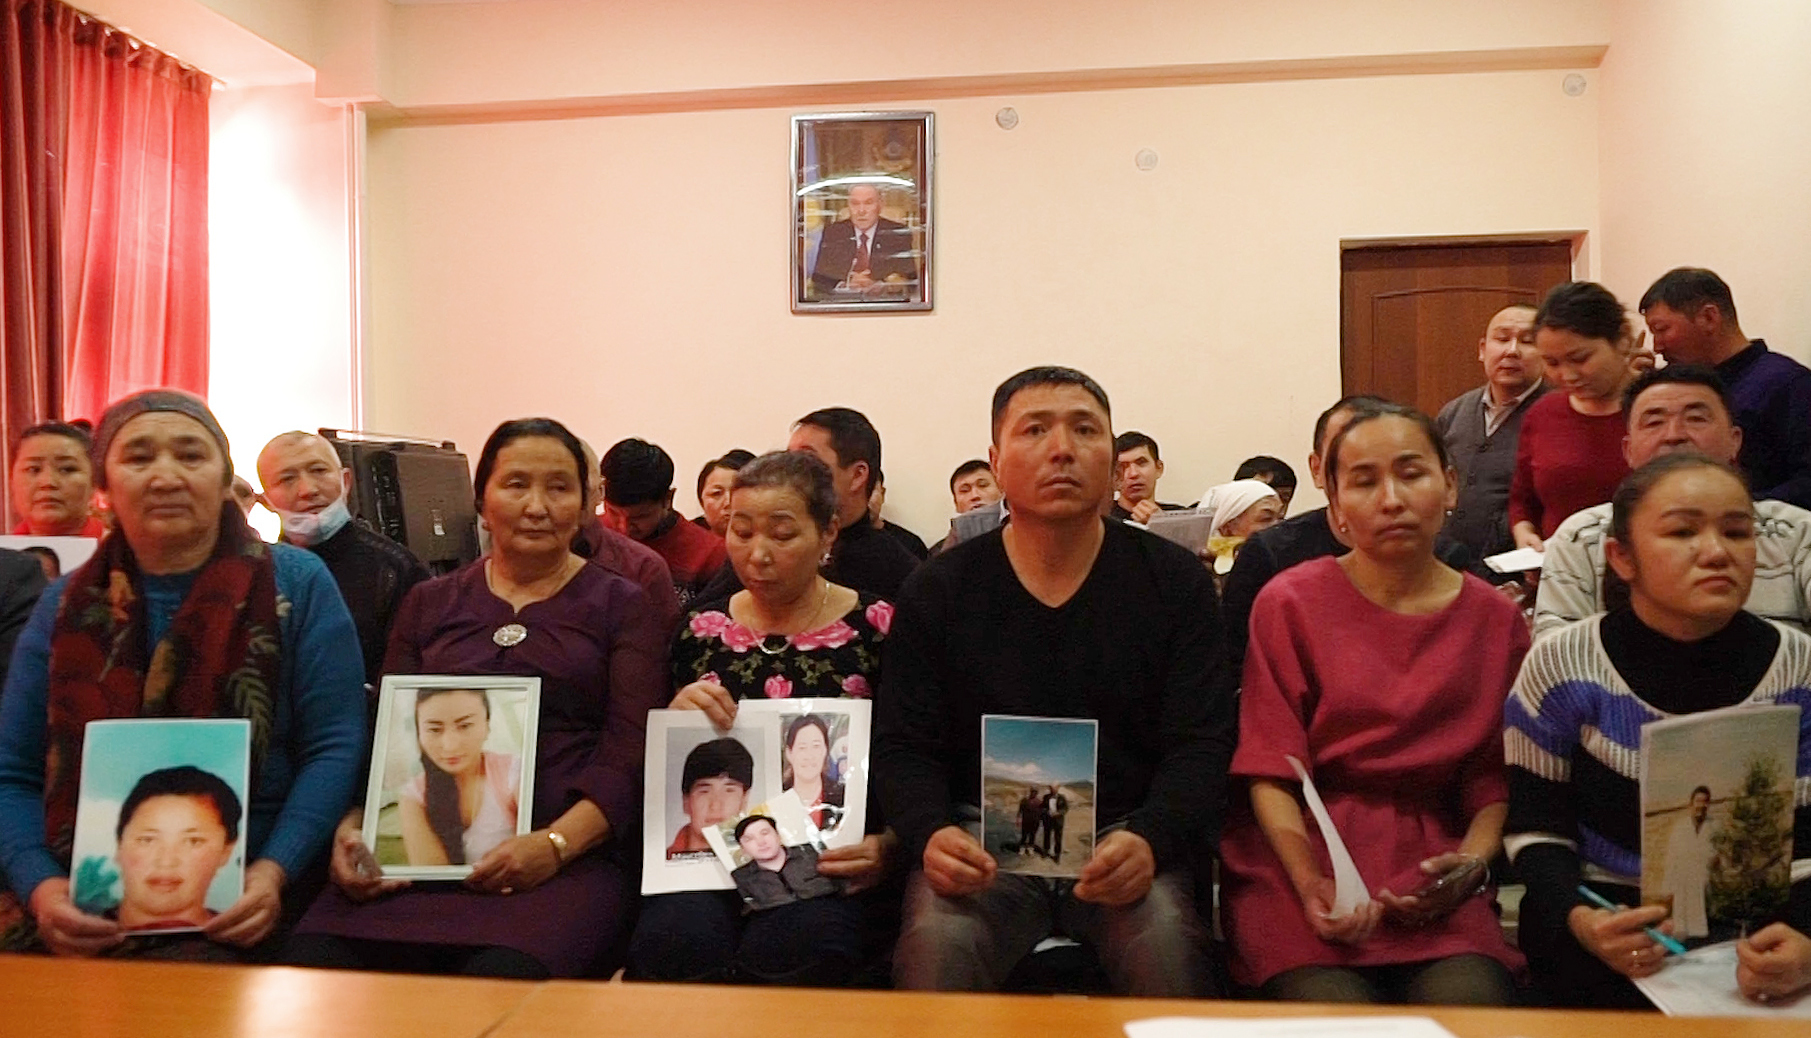 Relatives of people missing in Xinjiang hold up photos at an office of an advocacy organization in Kazakhstan in 2018.